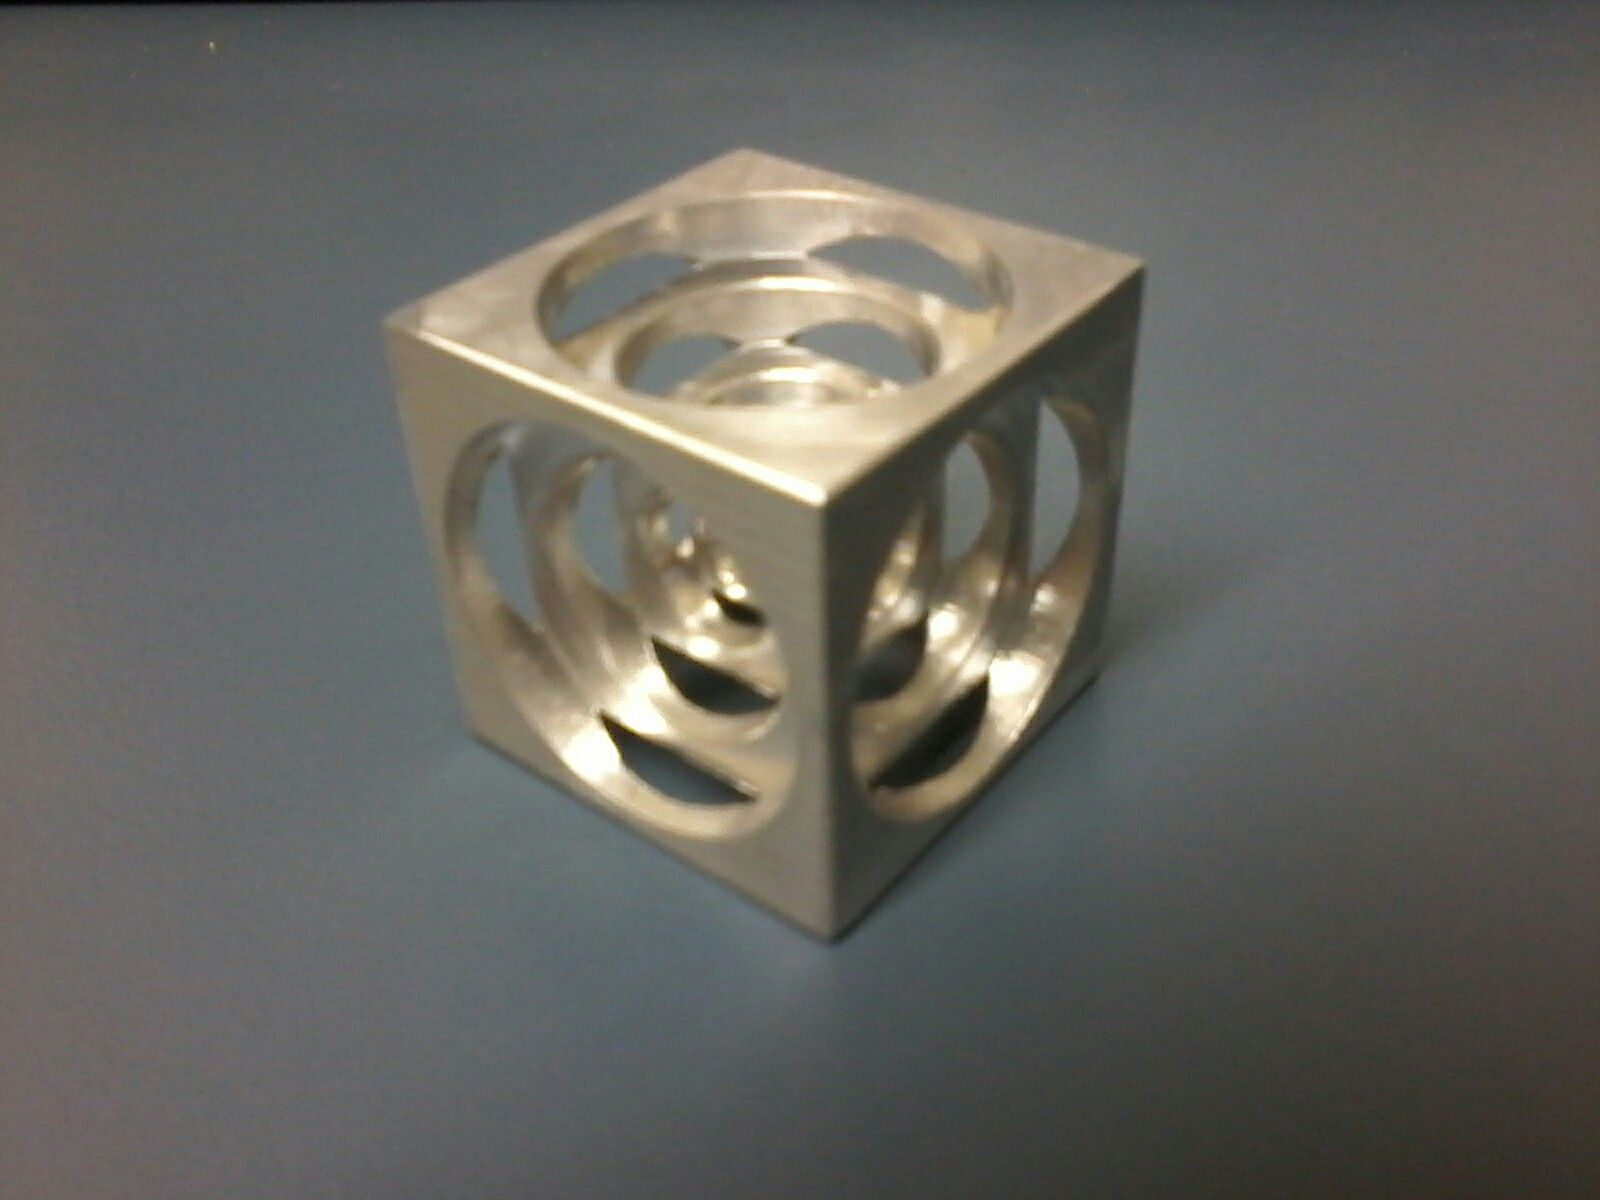 Turners cube a long traditional exercise for apprentice machinists 1600x1200